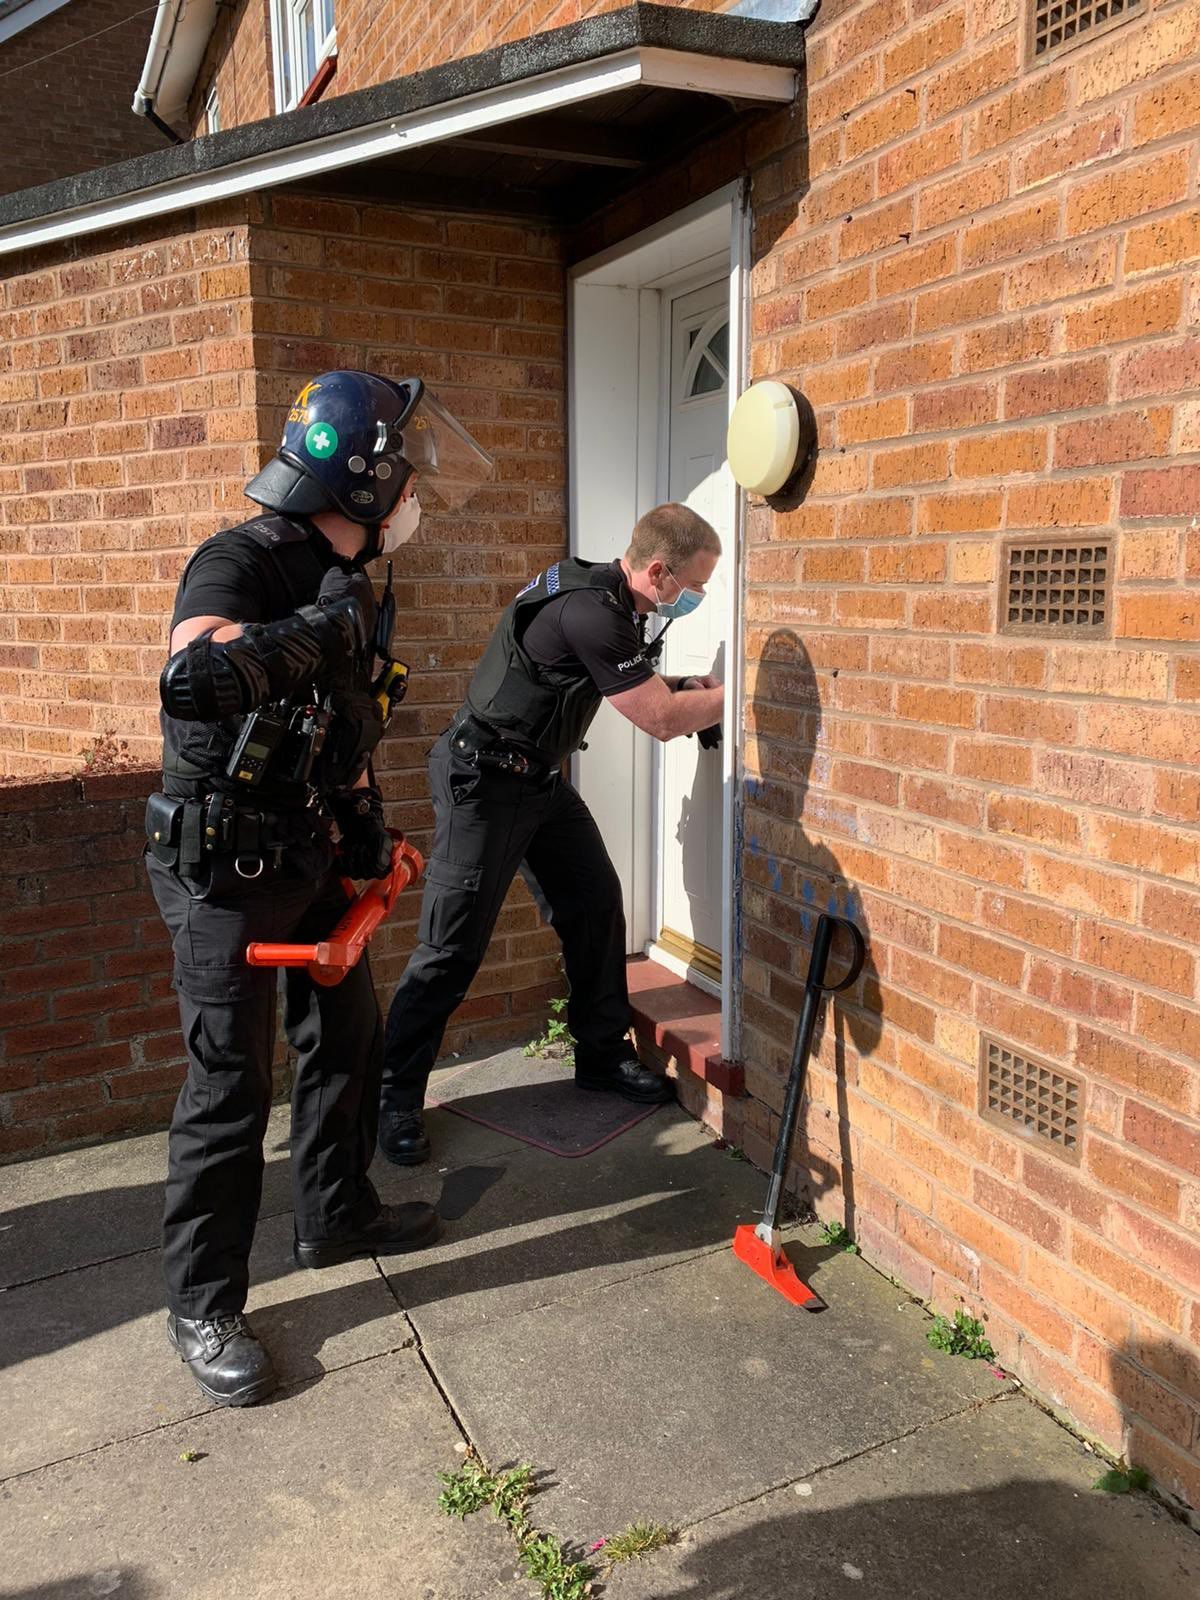 Police made an arrest after a drugs bust in Shrewsbury. Picture: Insp Saf Ali